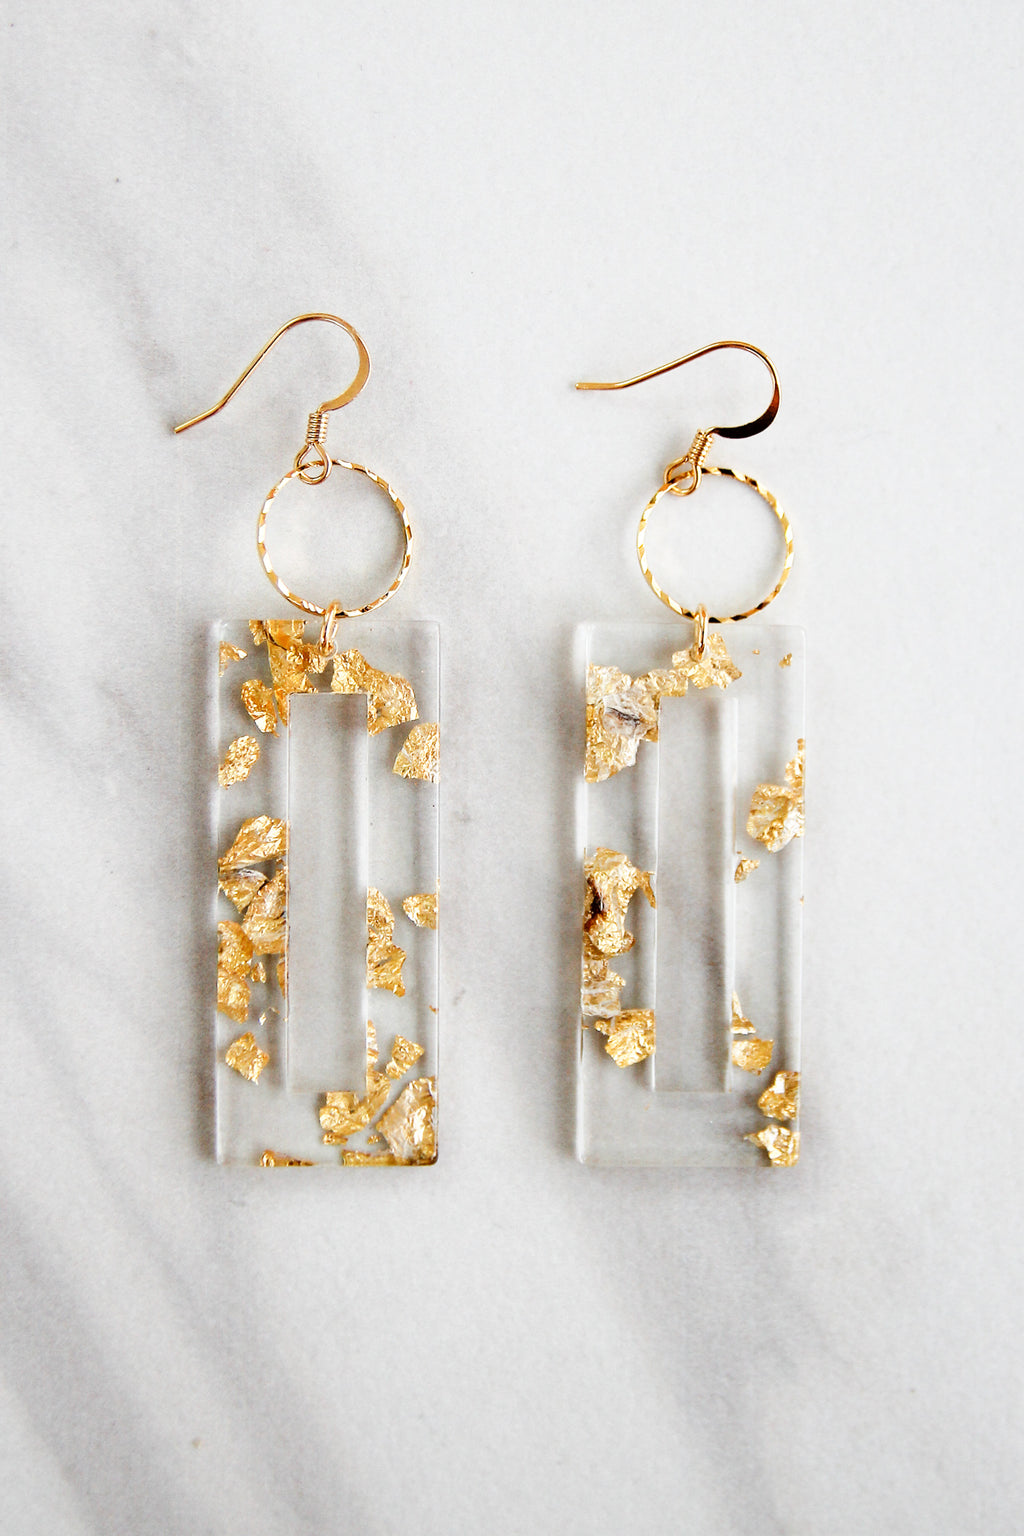 Gold Leaf Acrylic Drop Earrings - Clear